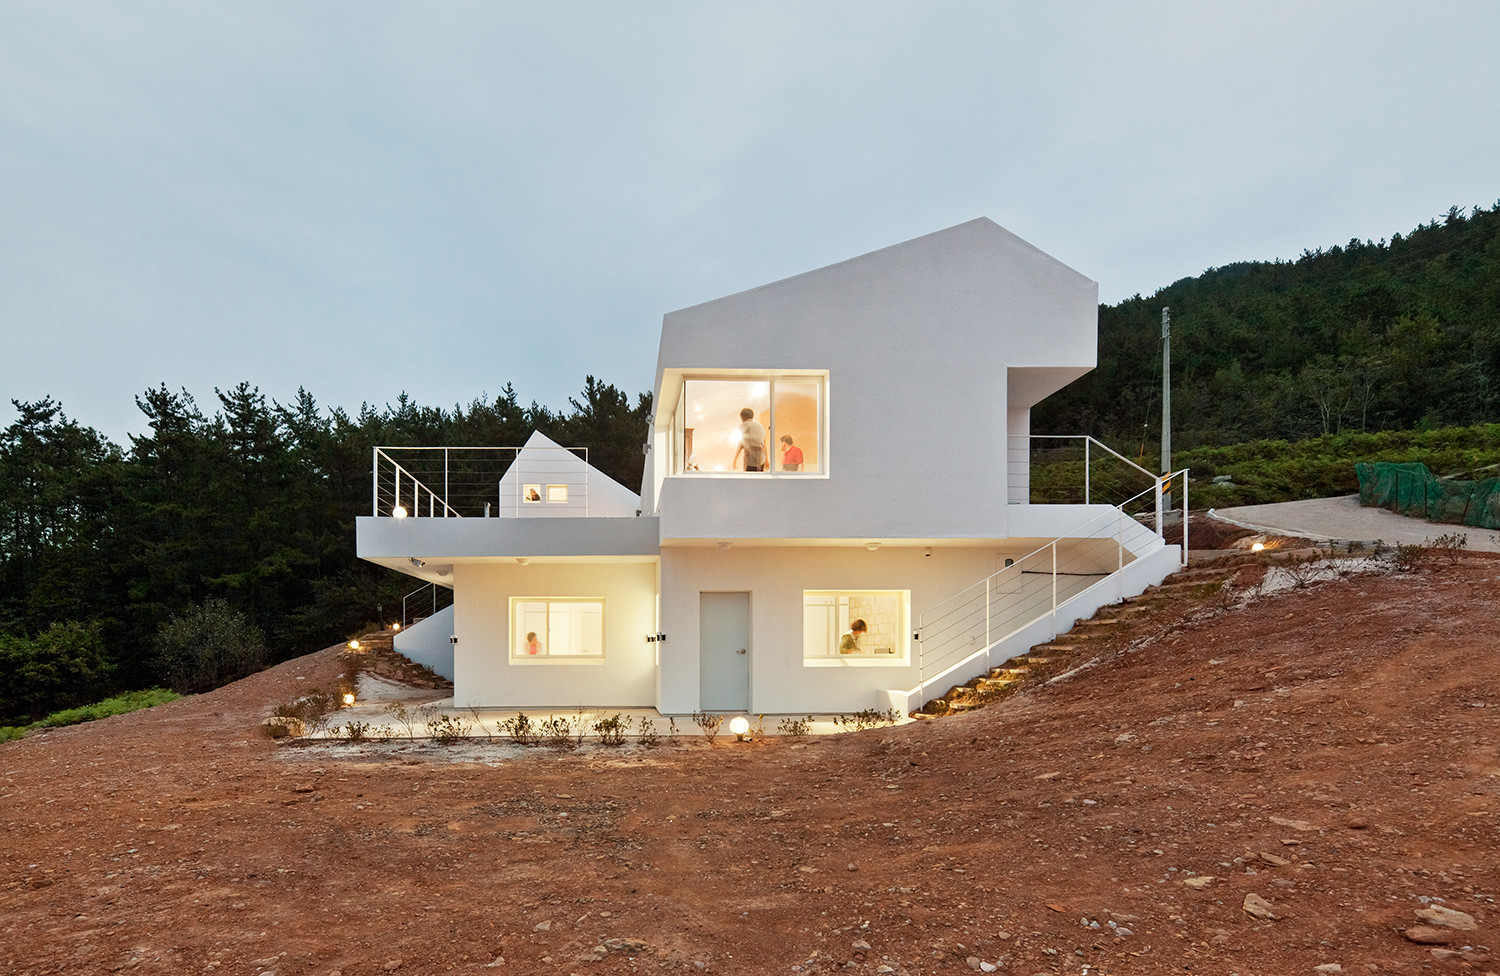 Net Zero Energy House Lifethings Archdaily